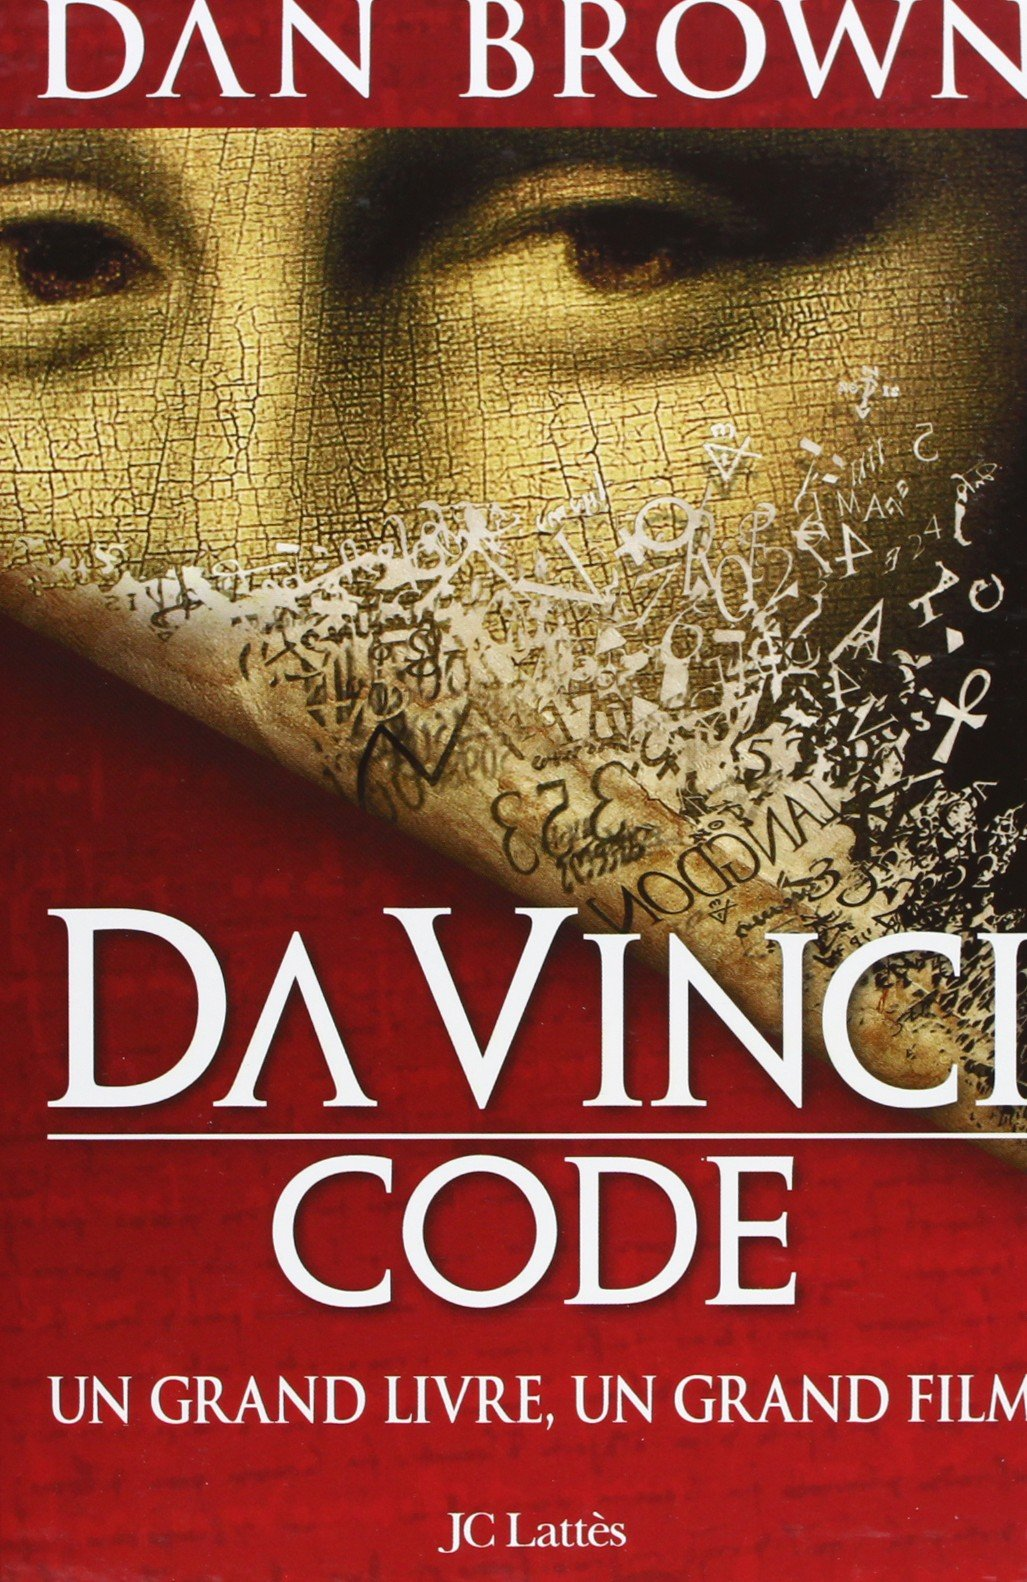 an analysis of dan browns novel the da vinci code With its gripping plot and provocative subject matter, dan brown's first megahit, the da vinci code, probably would have been a best-seller at any point in history dan brown poses in 2014.